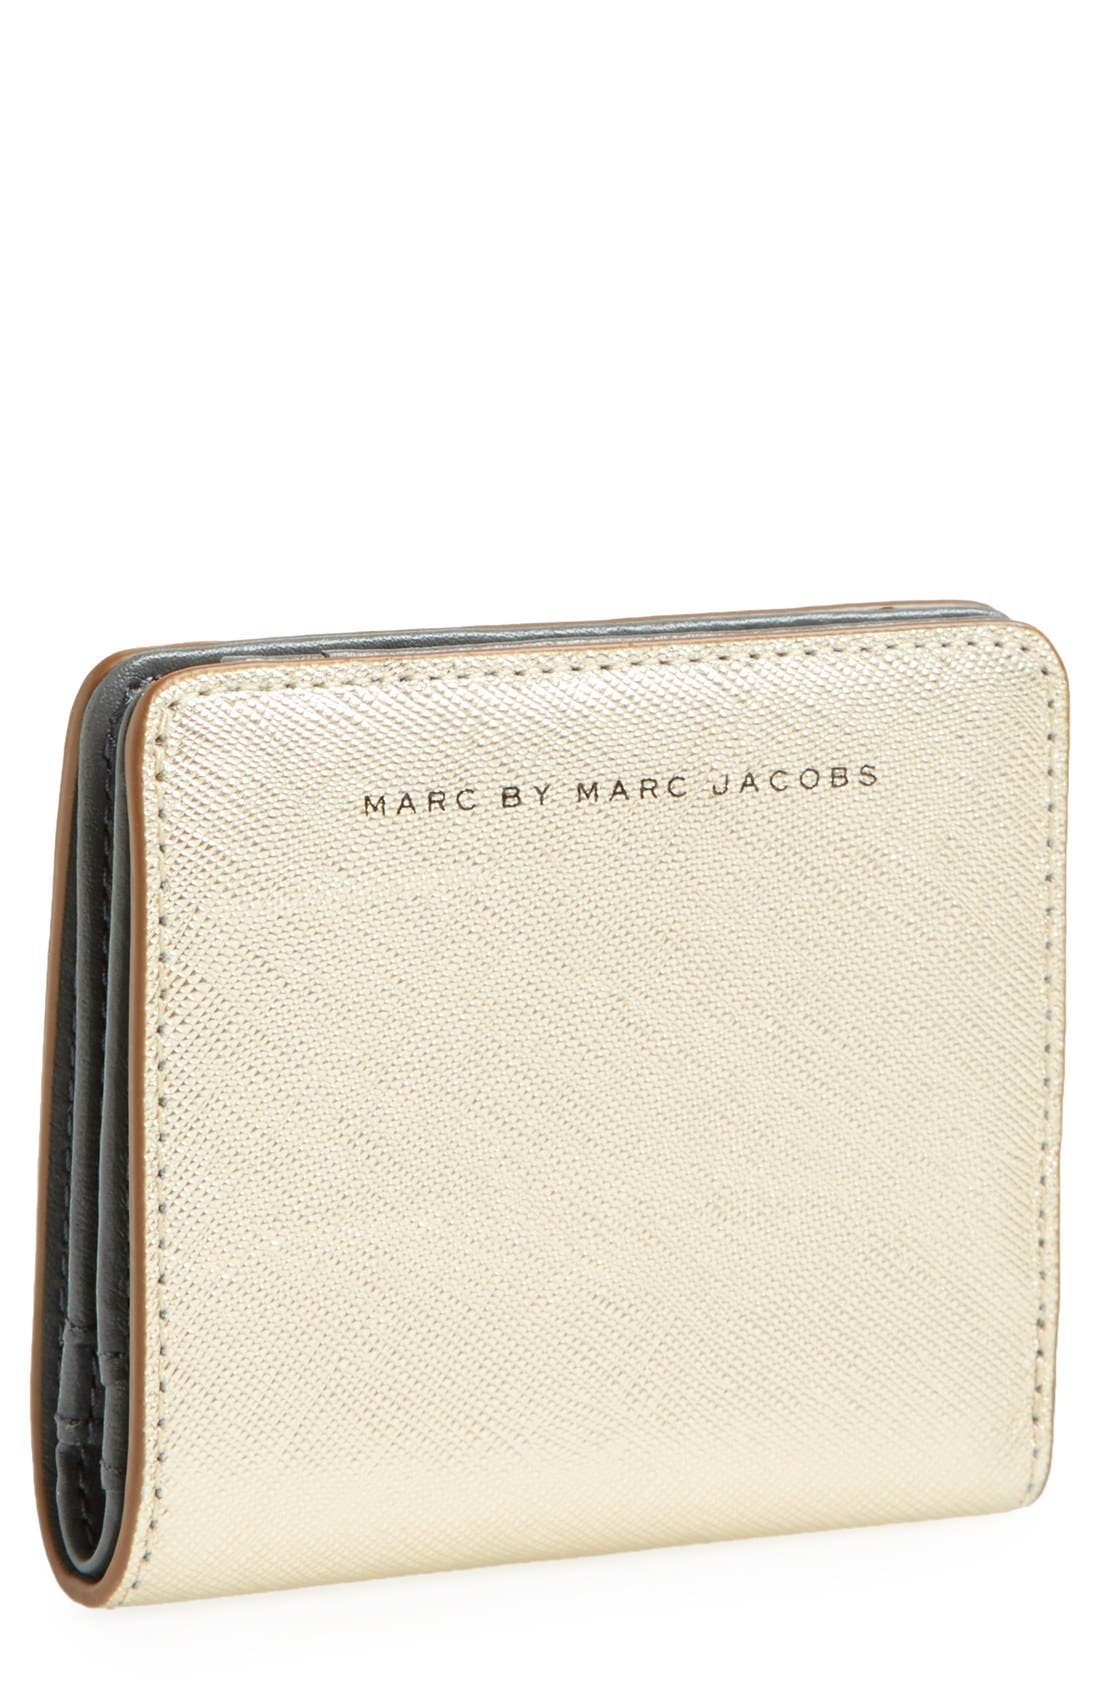 Alternate Image 1 Selected - MARC BY MARC JACOBS 'Sophisticato - Emi' Saffiano Leather Wallet